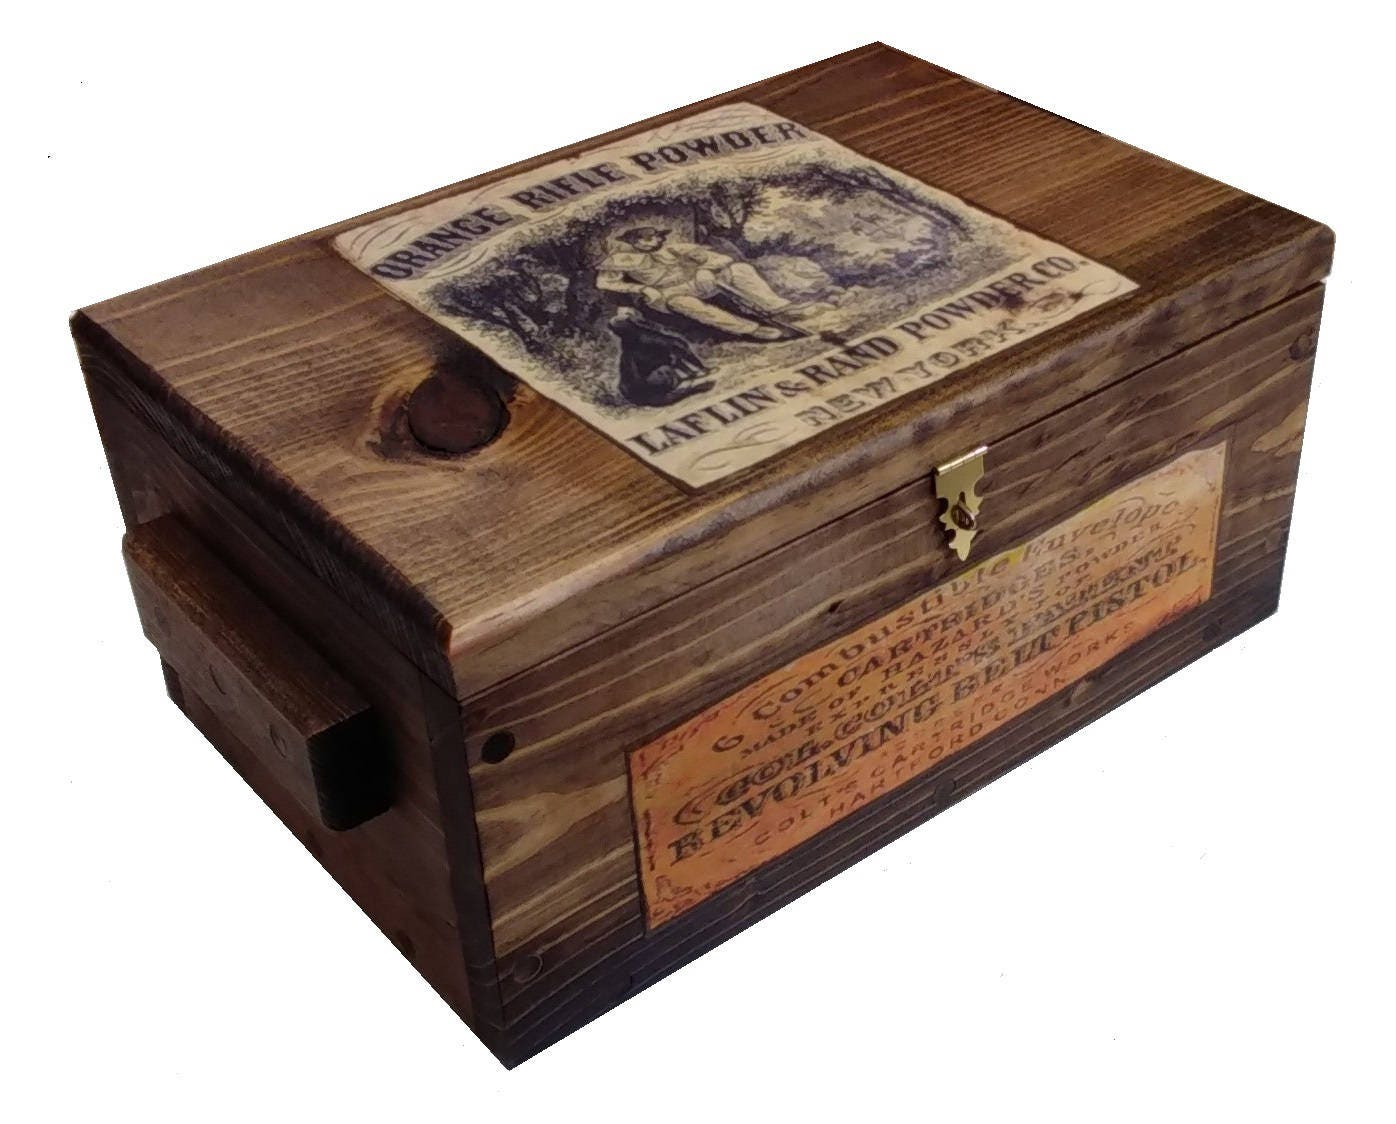 Rustic Wooden Hunting Box Ammo Crate Pistol Safe With Powder Ad